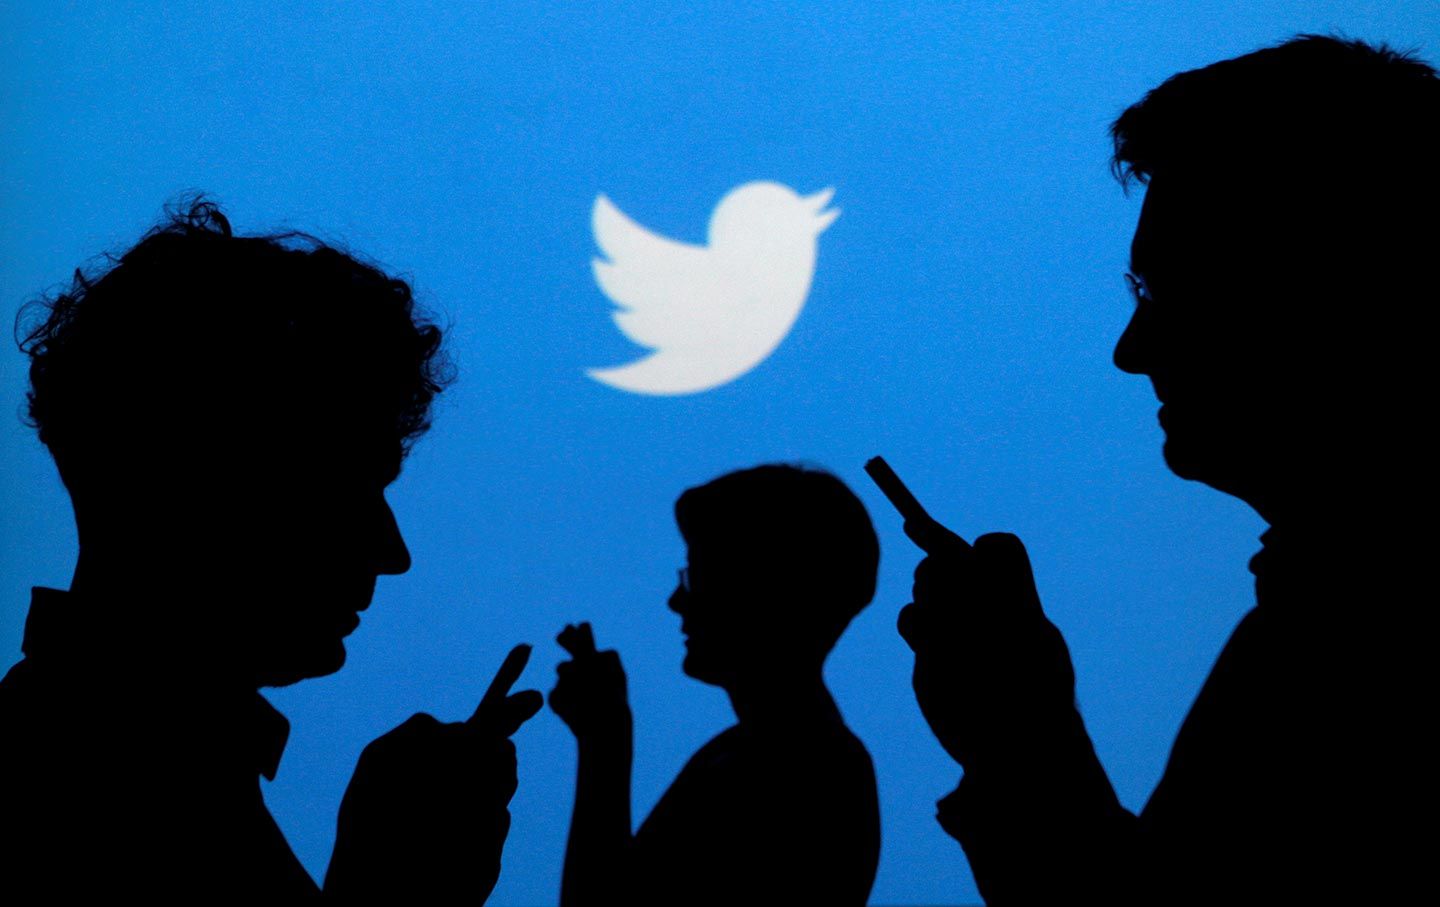 Twitter logo and silhouettes